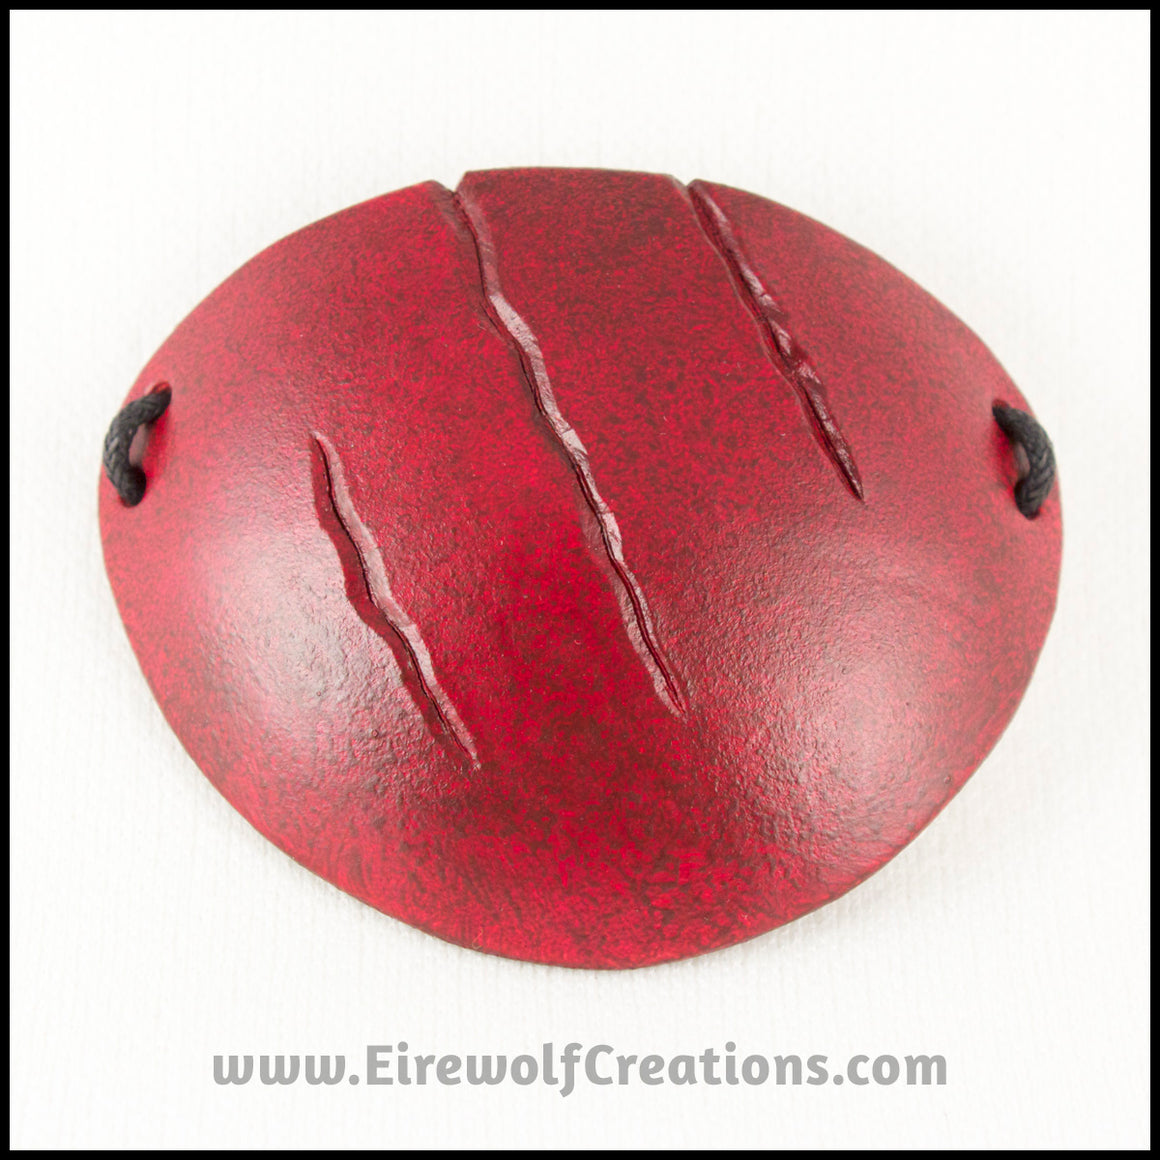 A handmade leather eye patch with three jagged scars carved diagonally, dyed and painted a mottled red reminiscent of blood, for a masquerade costume or assassin or pirate cosplay. By Erin Metcalf of Eirewolf Creations.